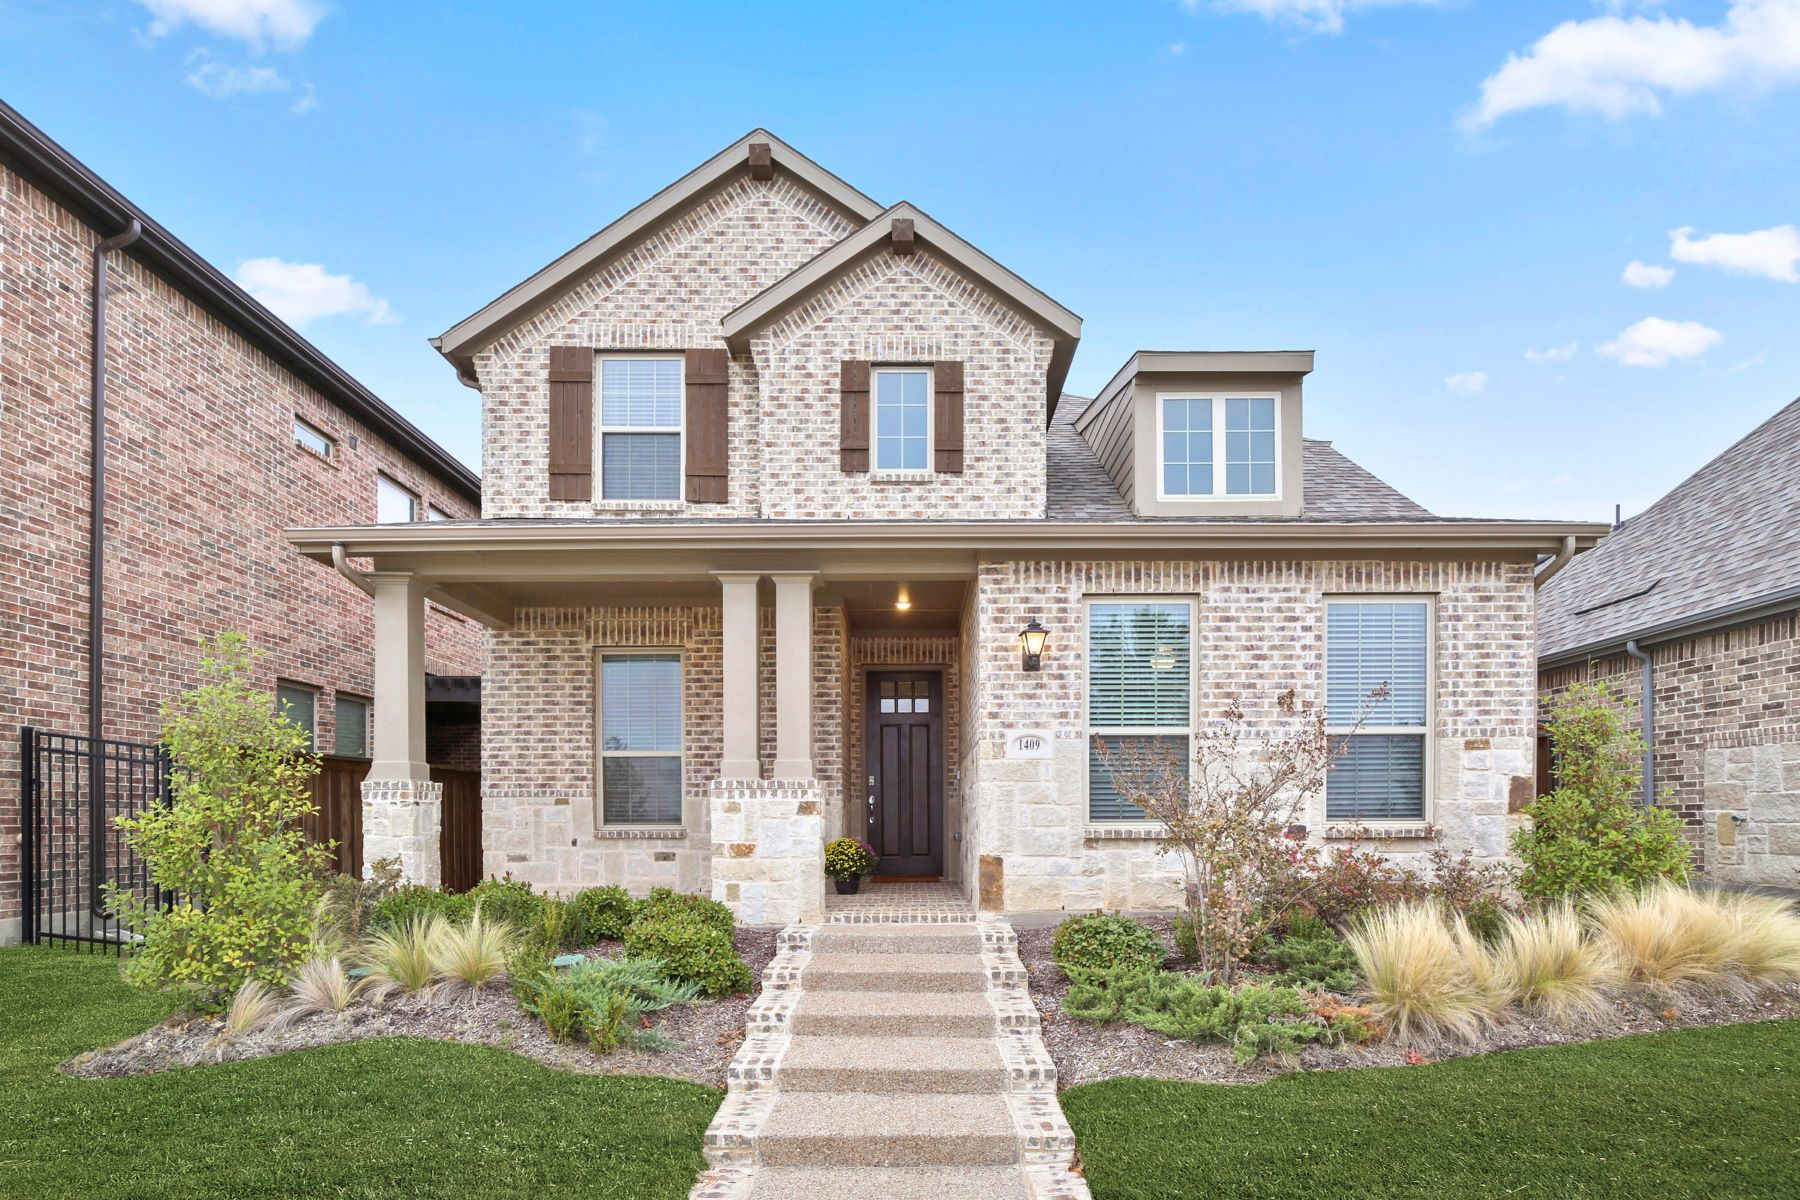 Single Family Homes for Sale at Like New! 1409 Birds Fort Trail Arlington, Texas 76005 United States